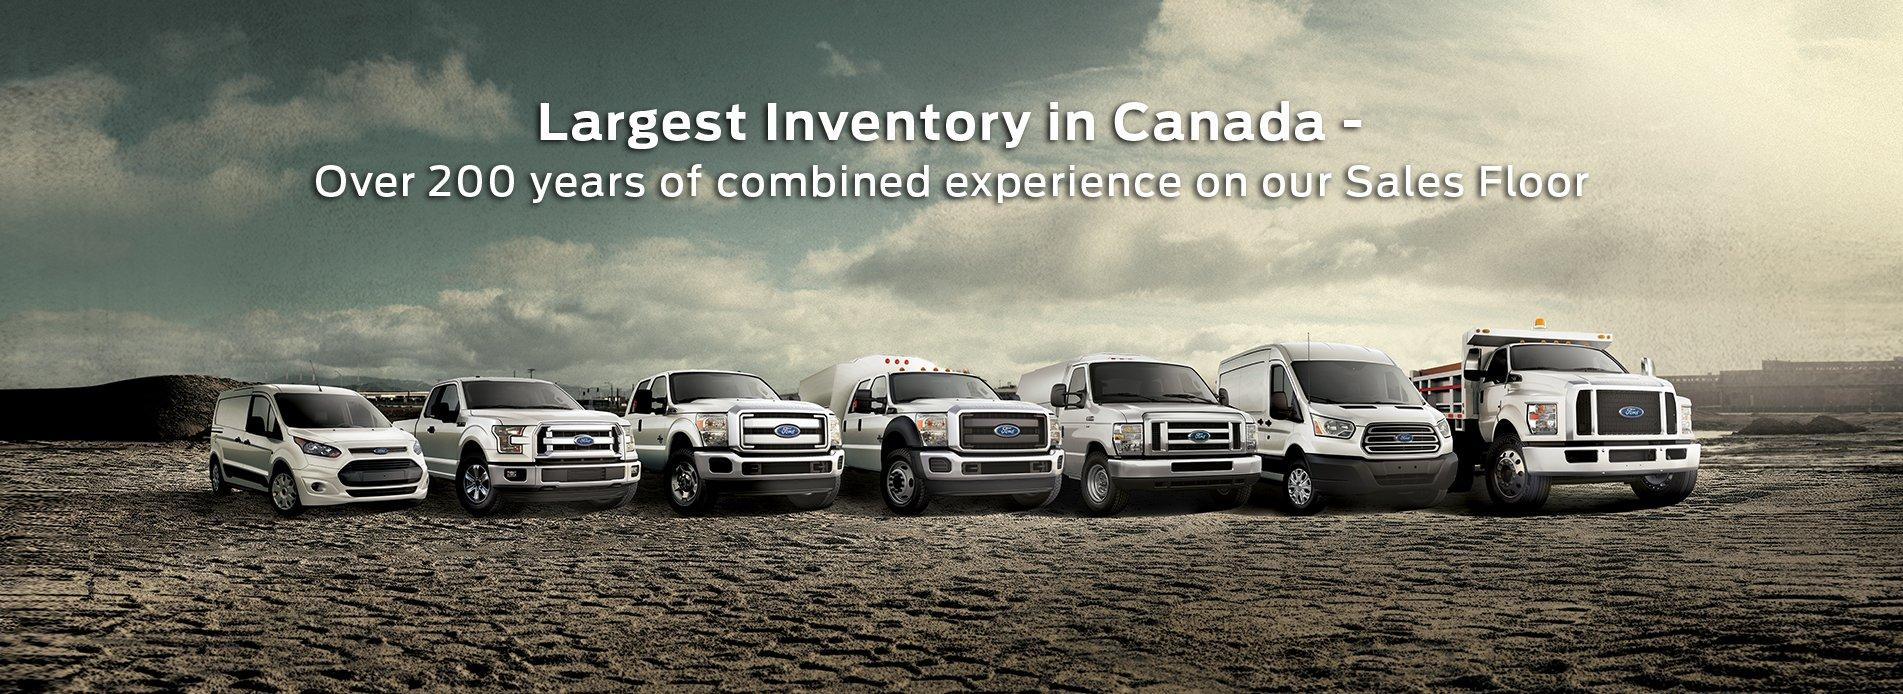 Yonge-Steeles Ford - Large Inventory